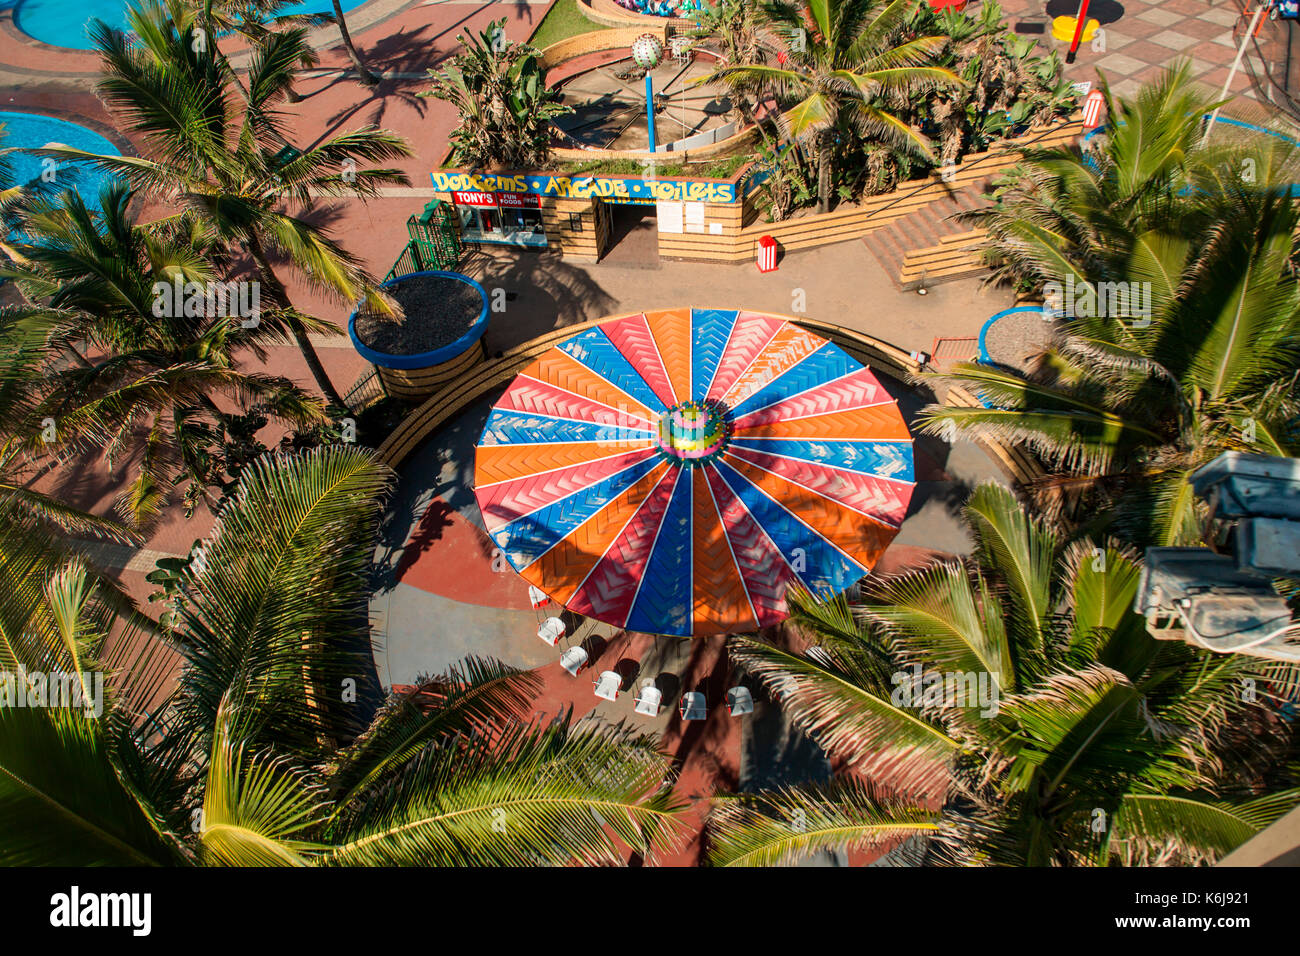 Aerial view of amusement park, rides, and arcade on promenade of Golden Mile in Durban, South Africa - Stock Image